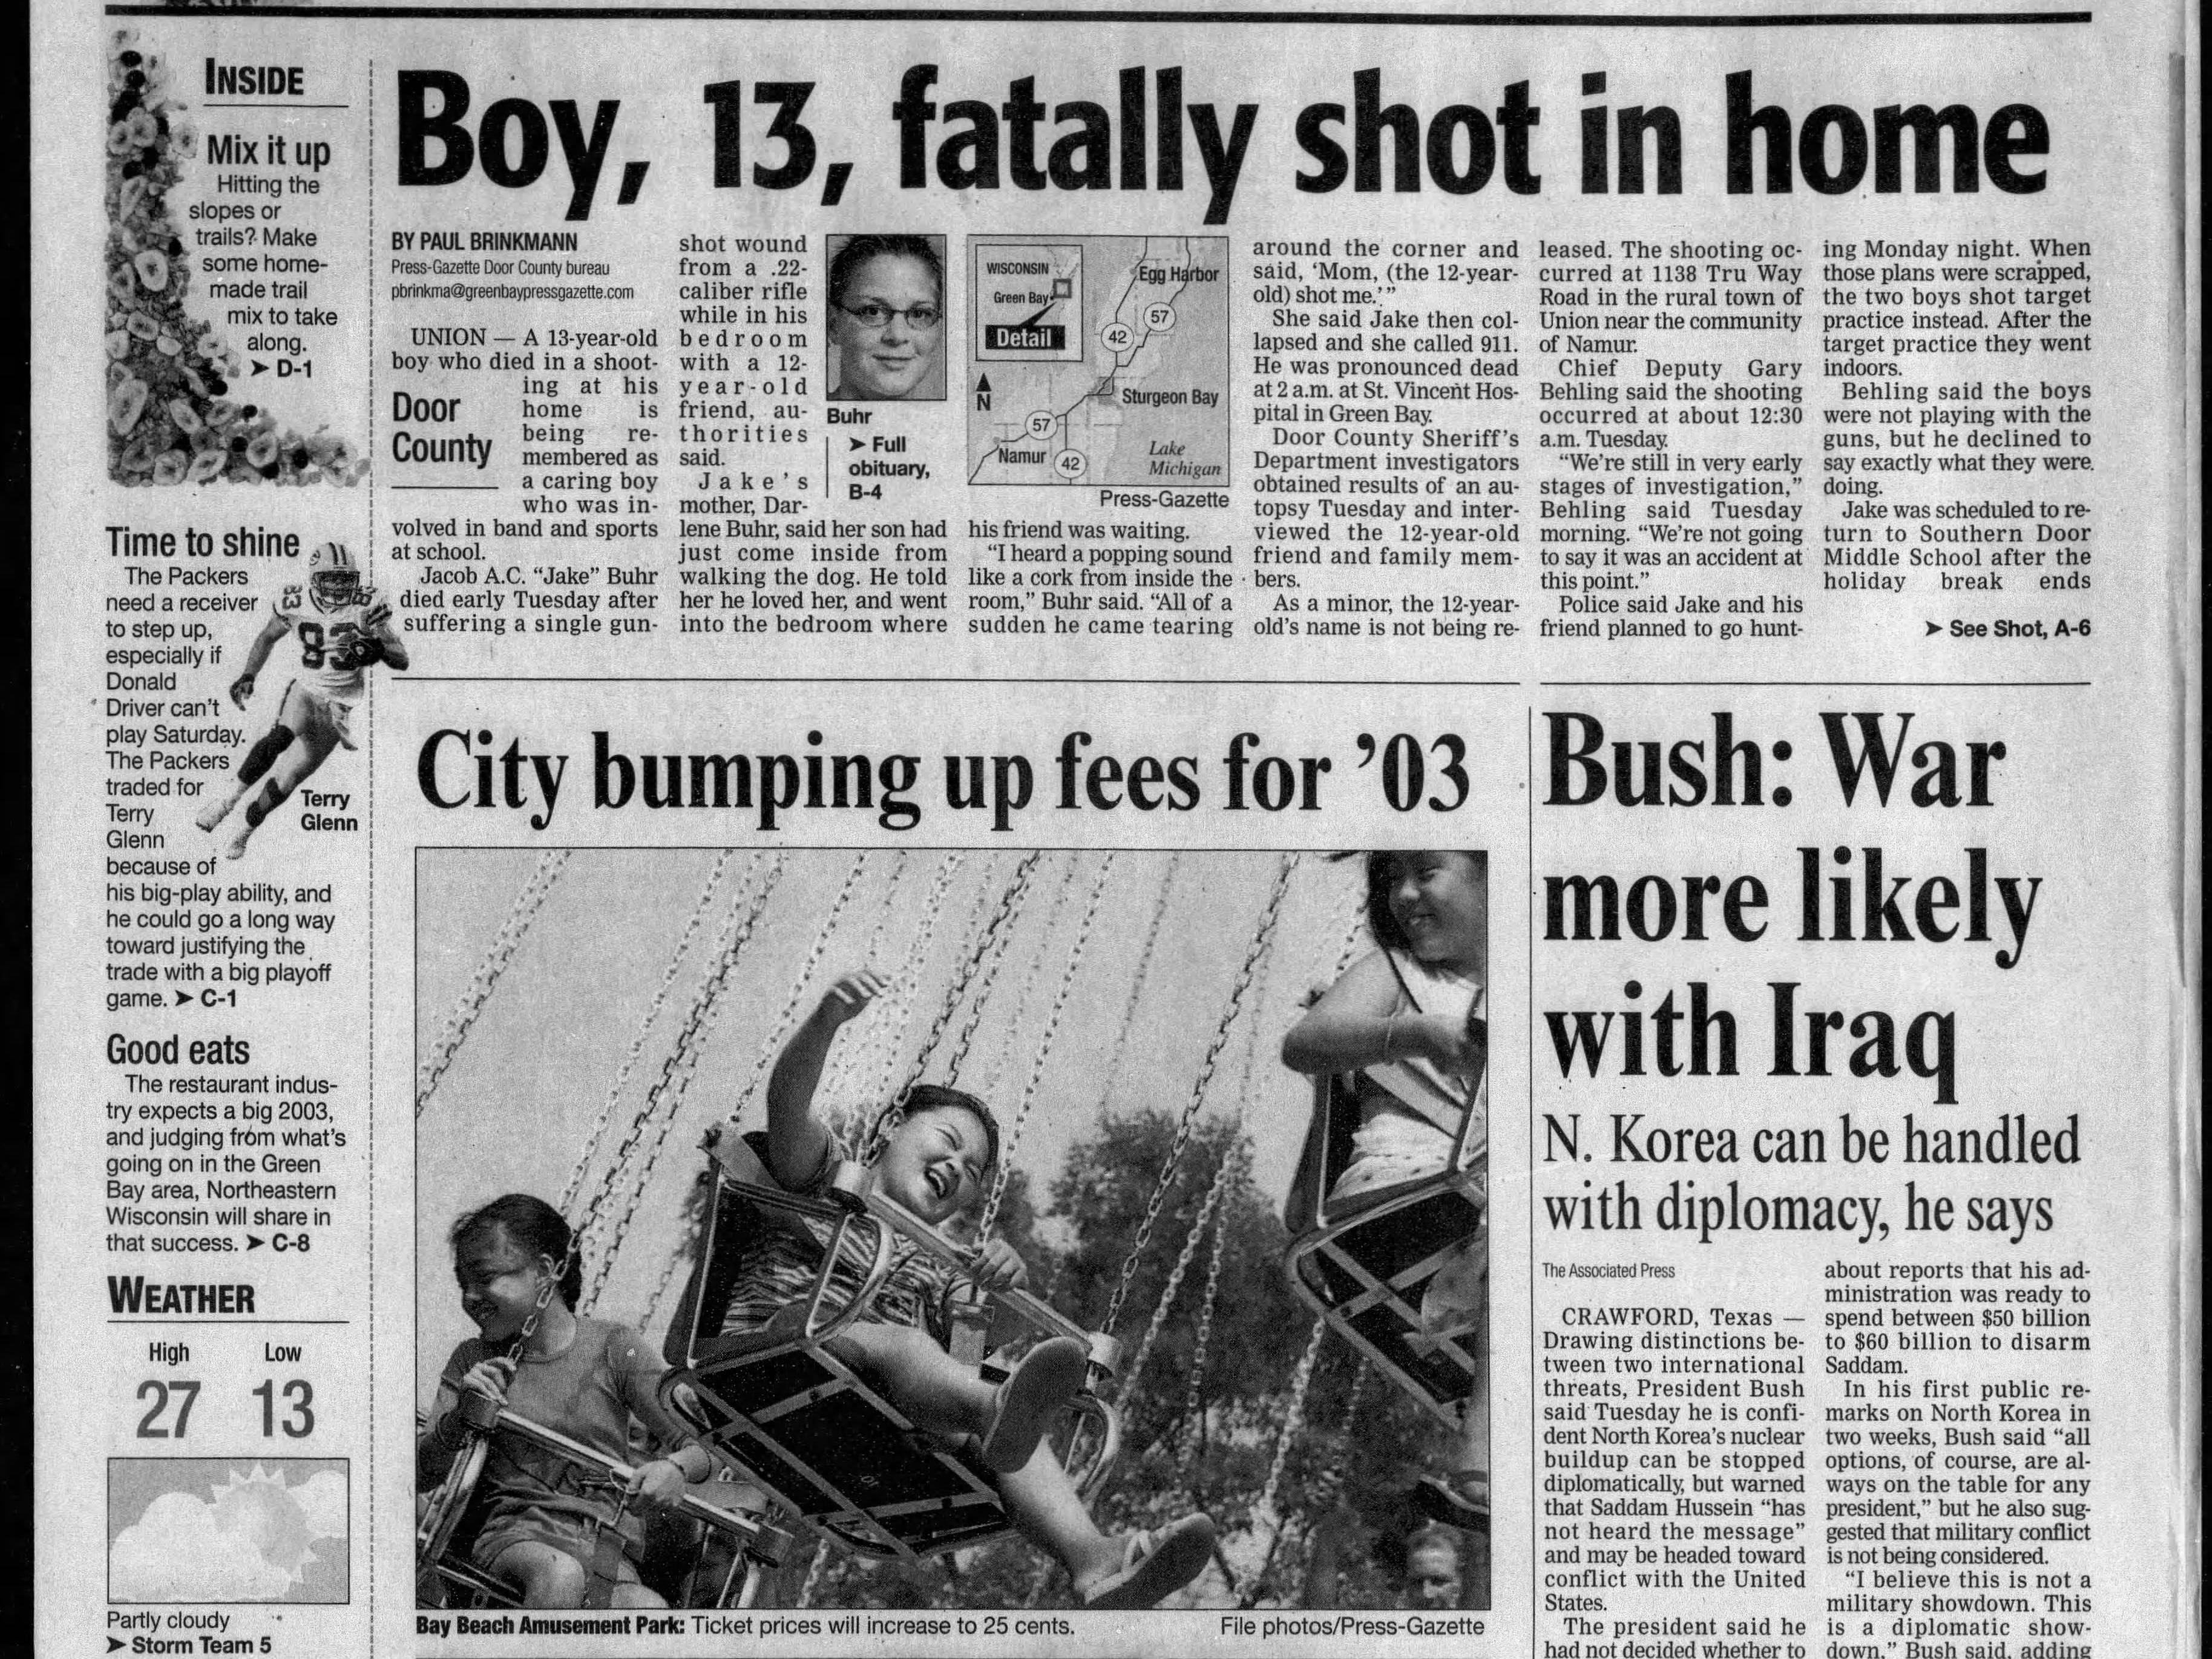 Today in History: Jan. 1, 2003